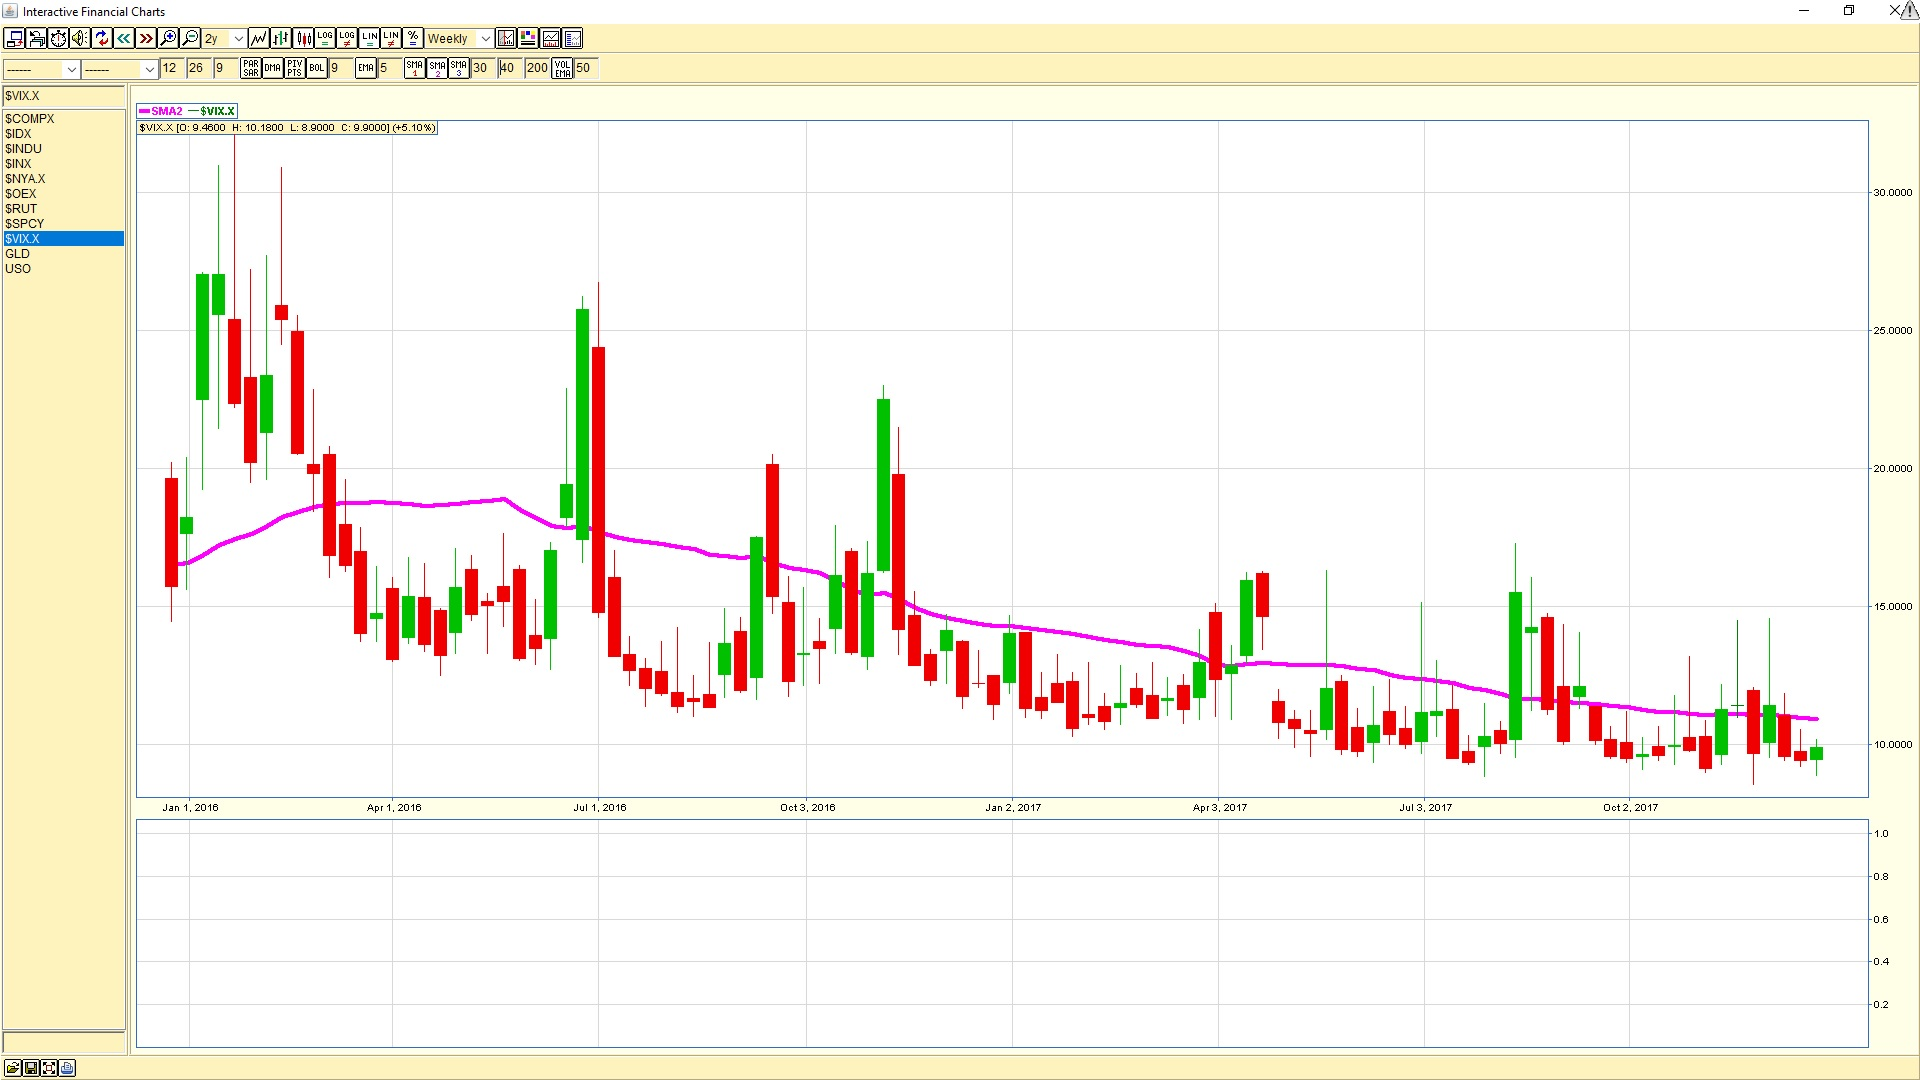 VIX Volatility Index weekly chart